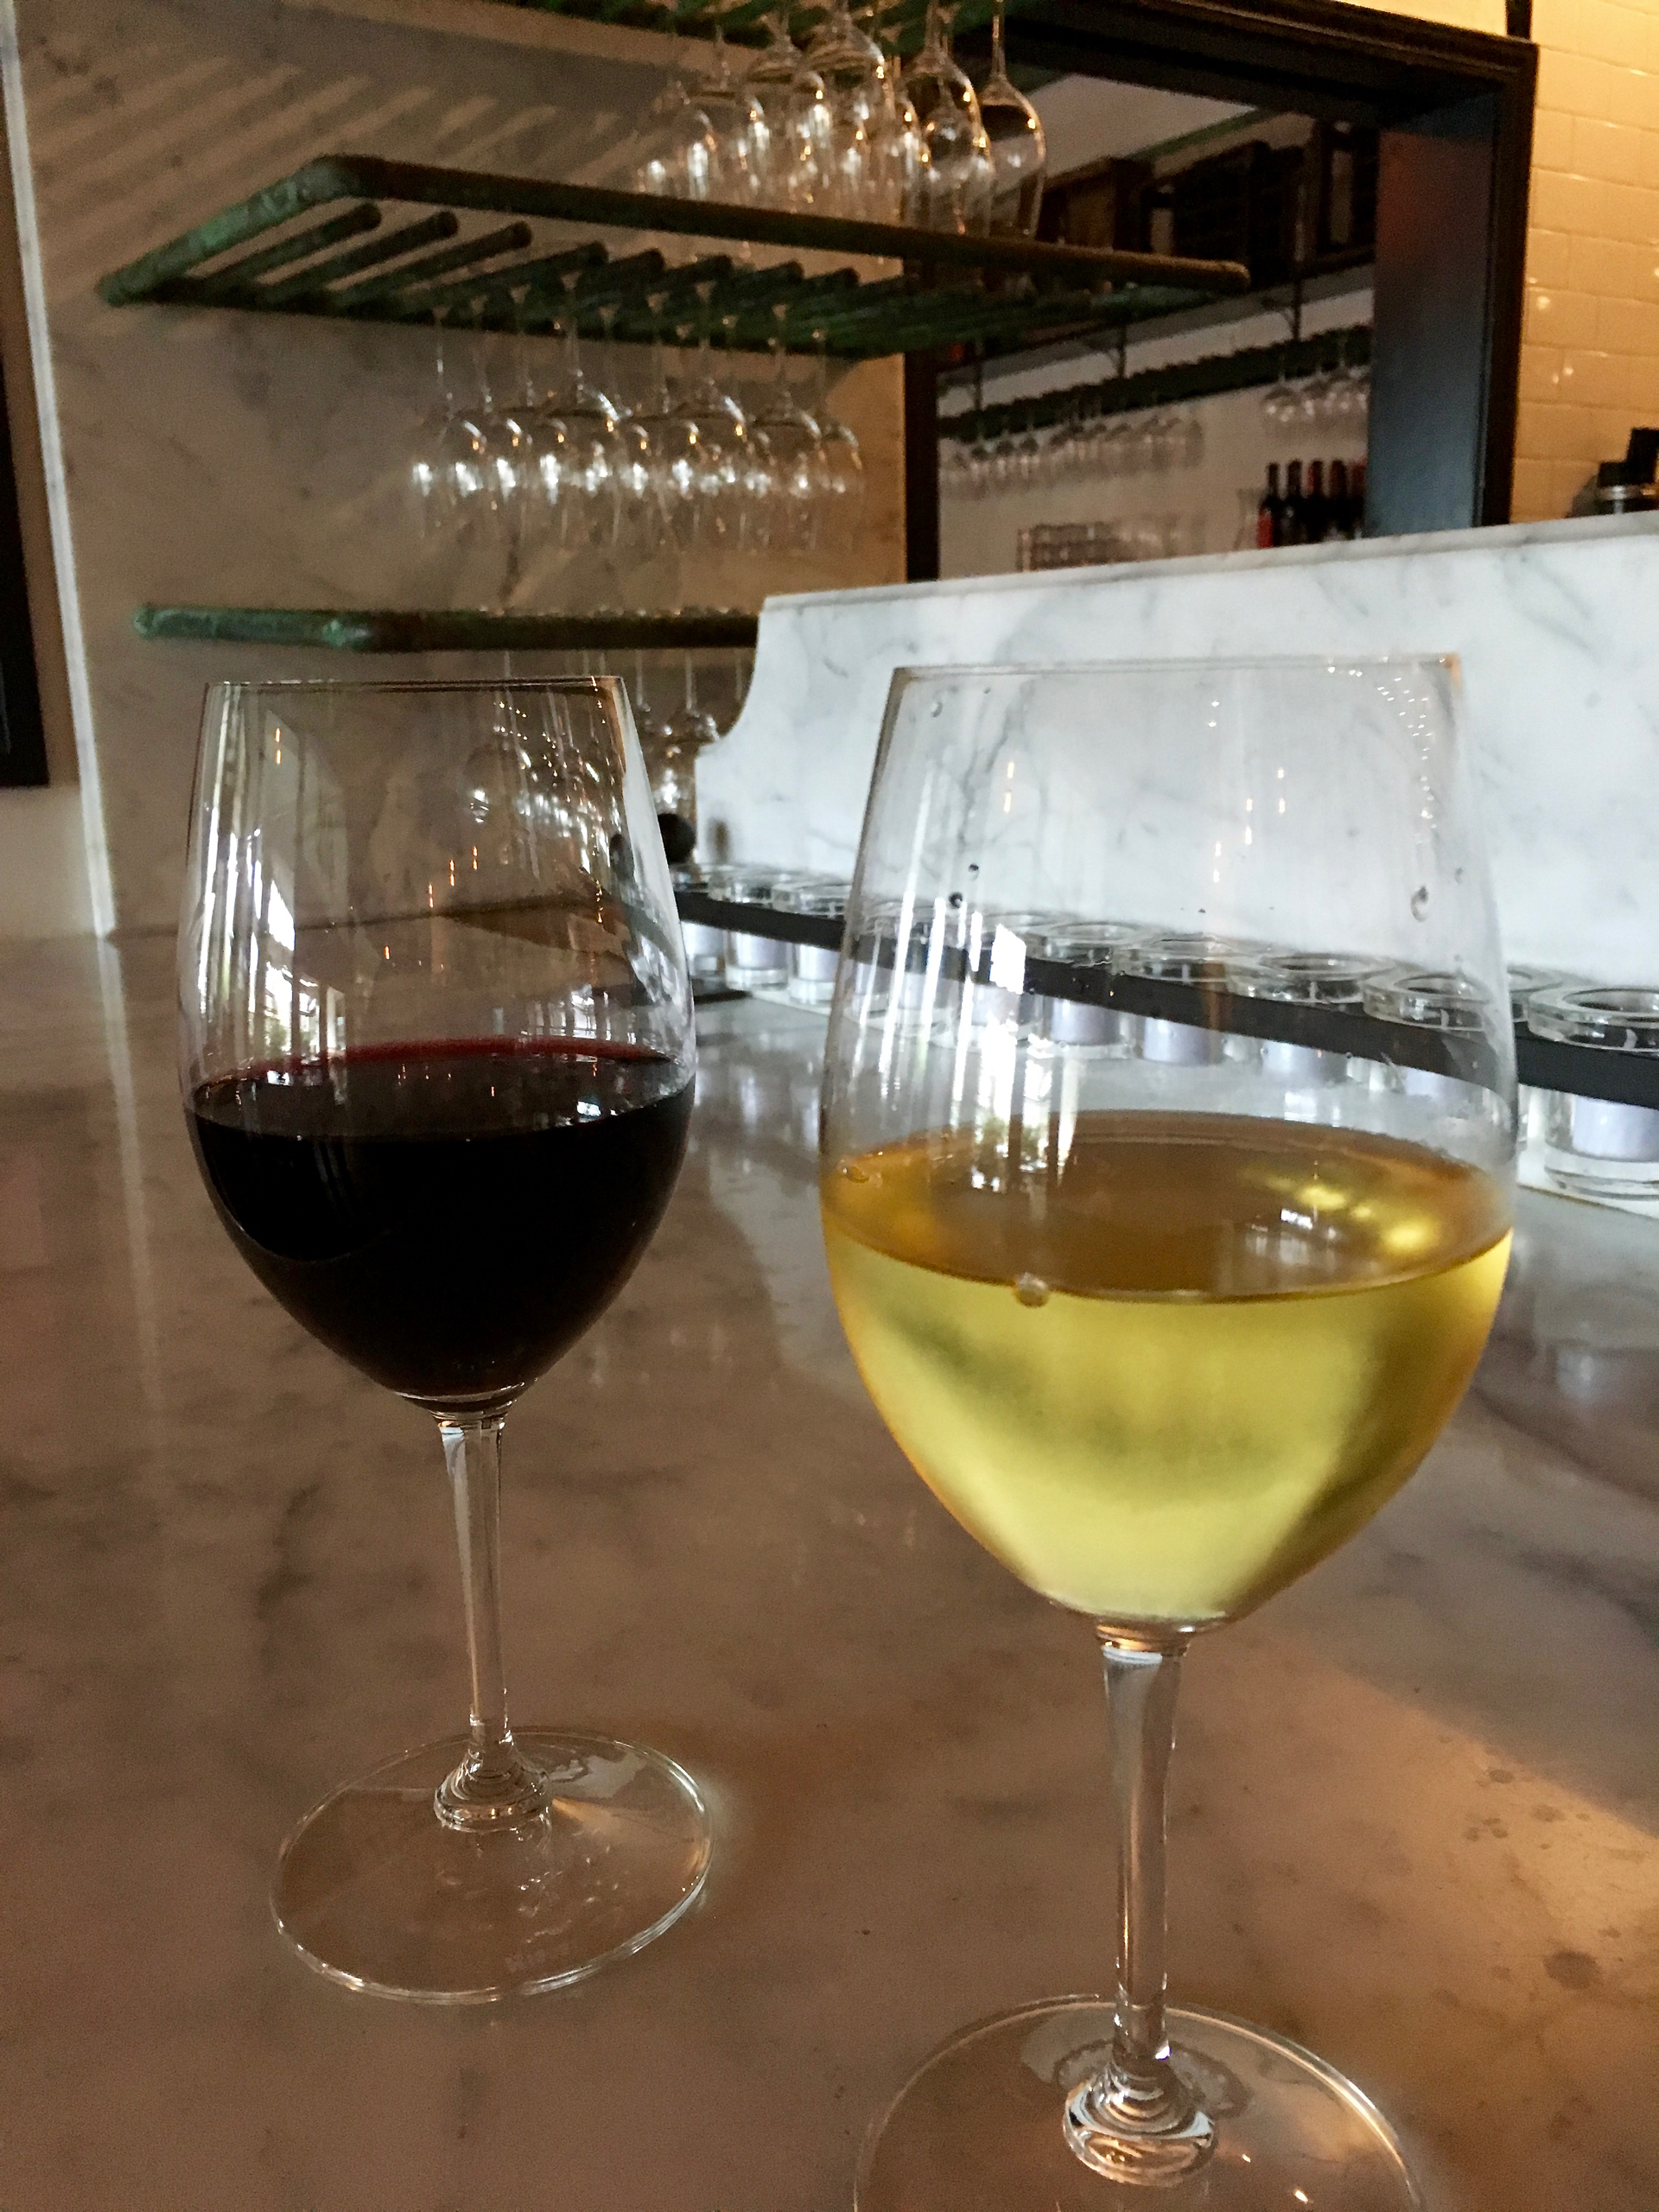 A glass of nero d'avola and rioja blanco at Enoteca La Storia.